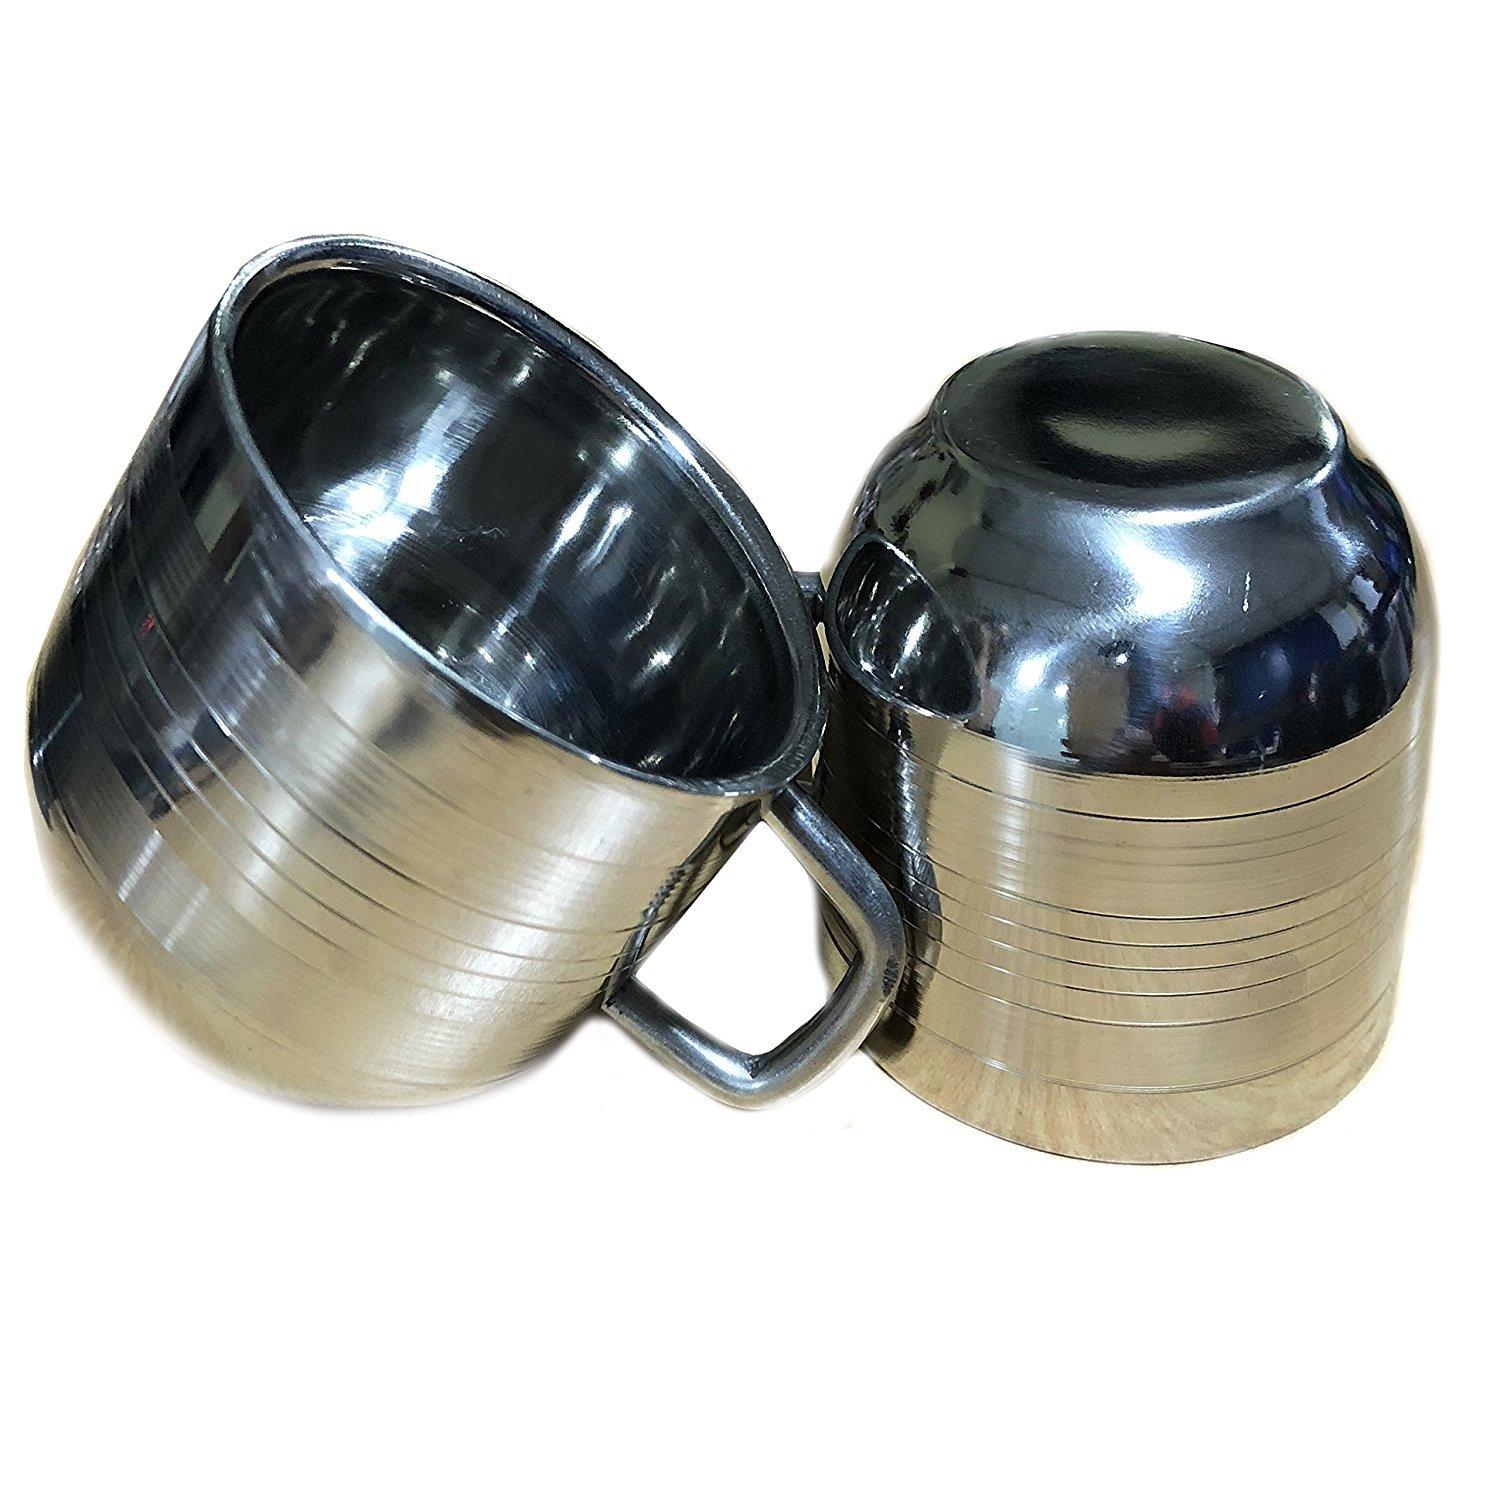 Set Of 2 Stainless Steel Drinking Cups for Kids,Tea & Coffee Cups, Silver Color Size 2.9 X 2.9 Inch